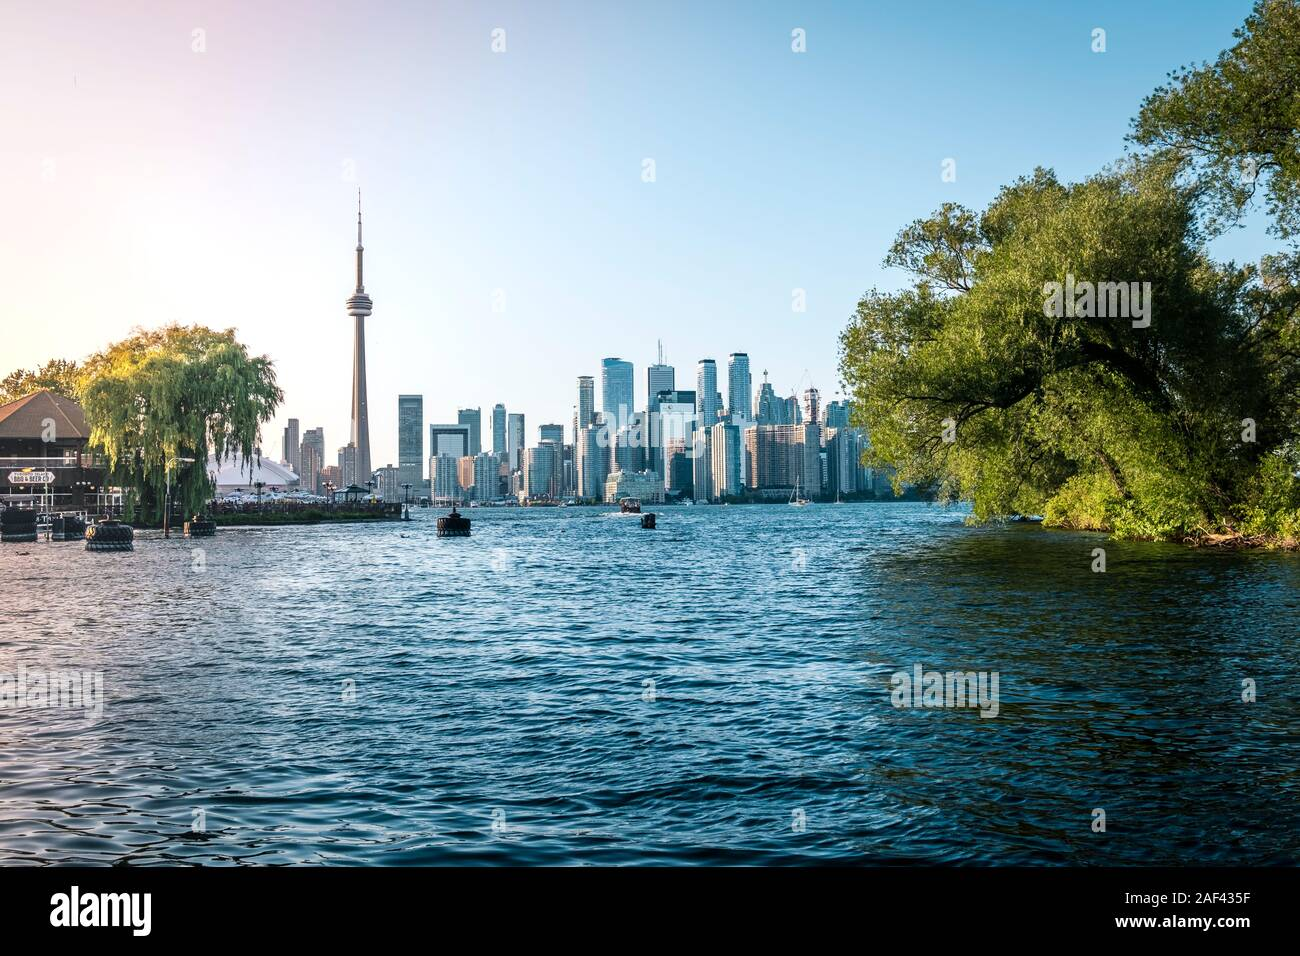 View of CN Tower and Toronto skyline from Toronto Islands Park at sunset. Stock Photo